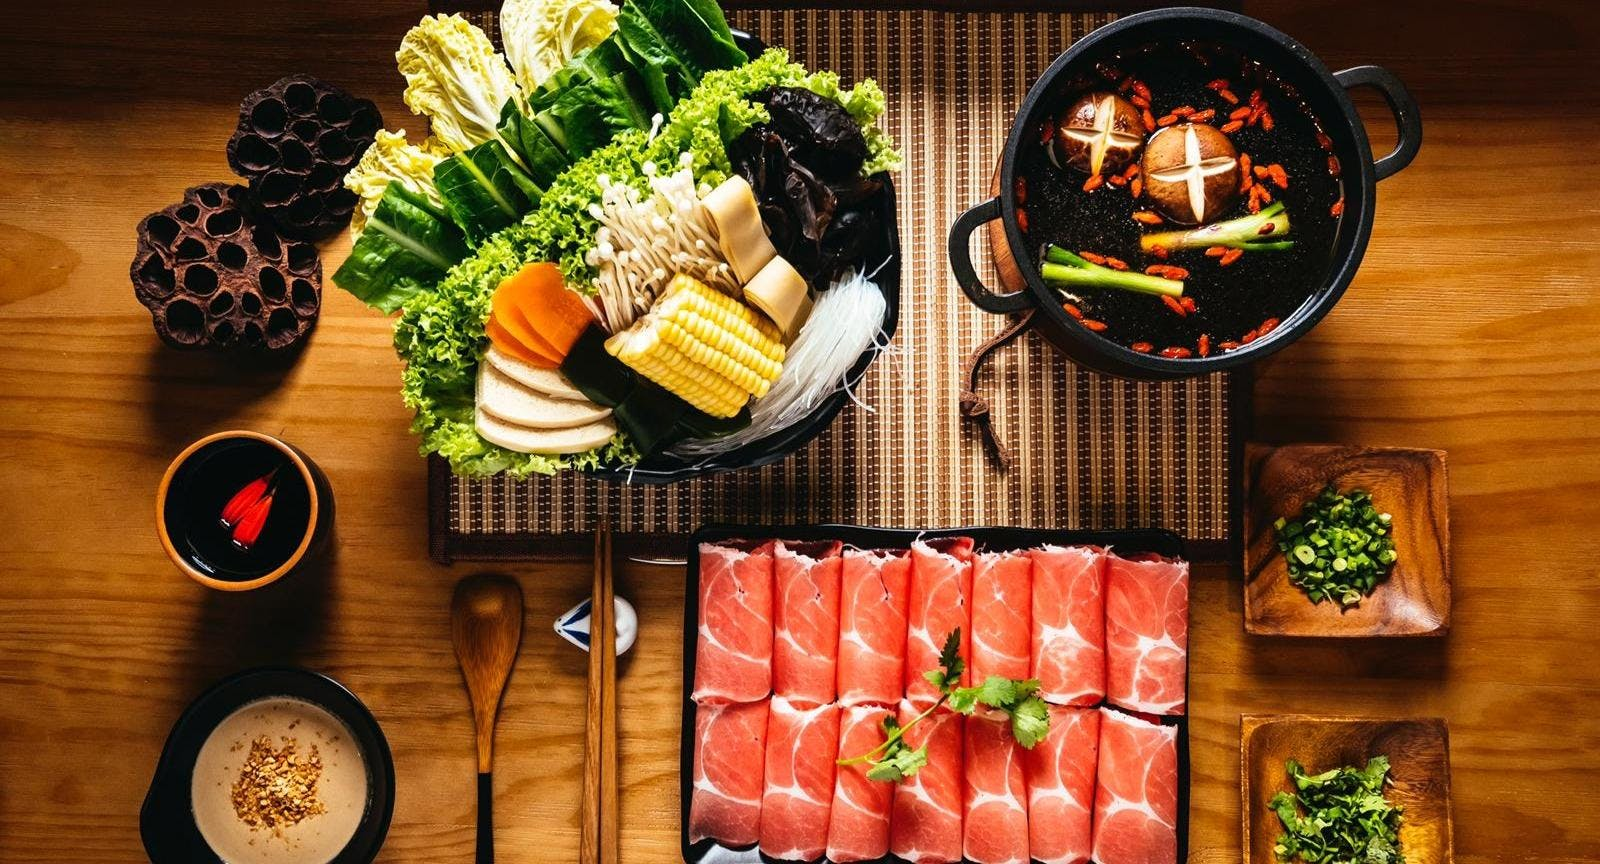 Shi Jian Hot Pot - 食间火锅 Suntec City Singapore image 3